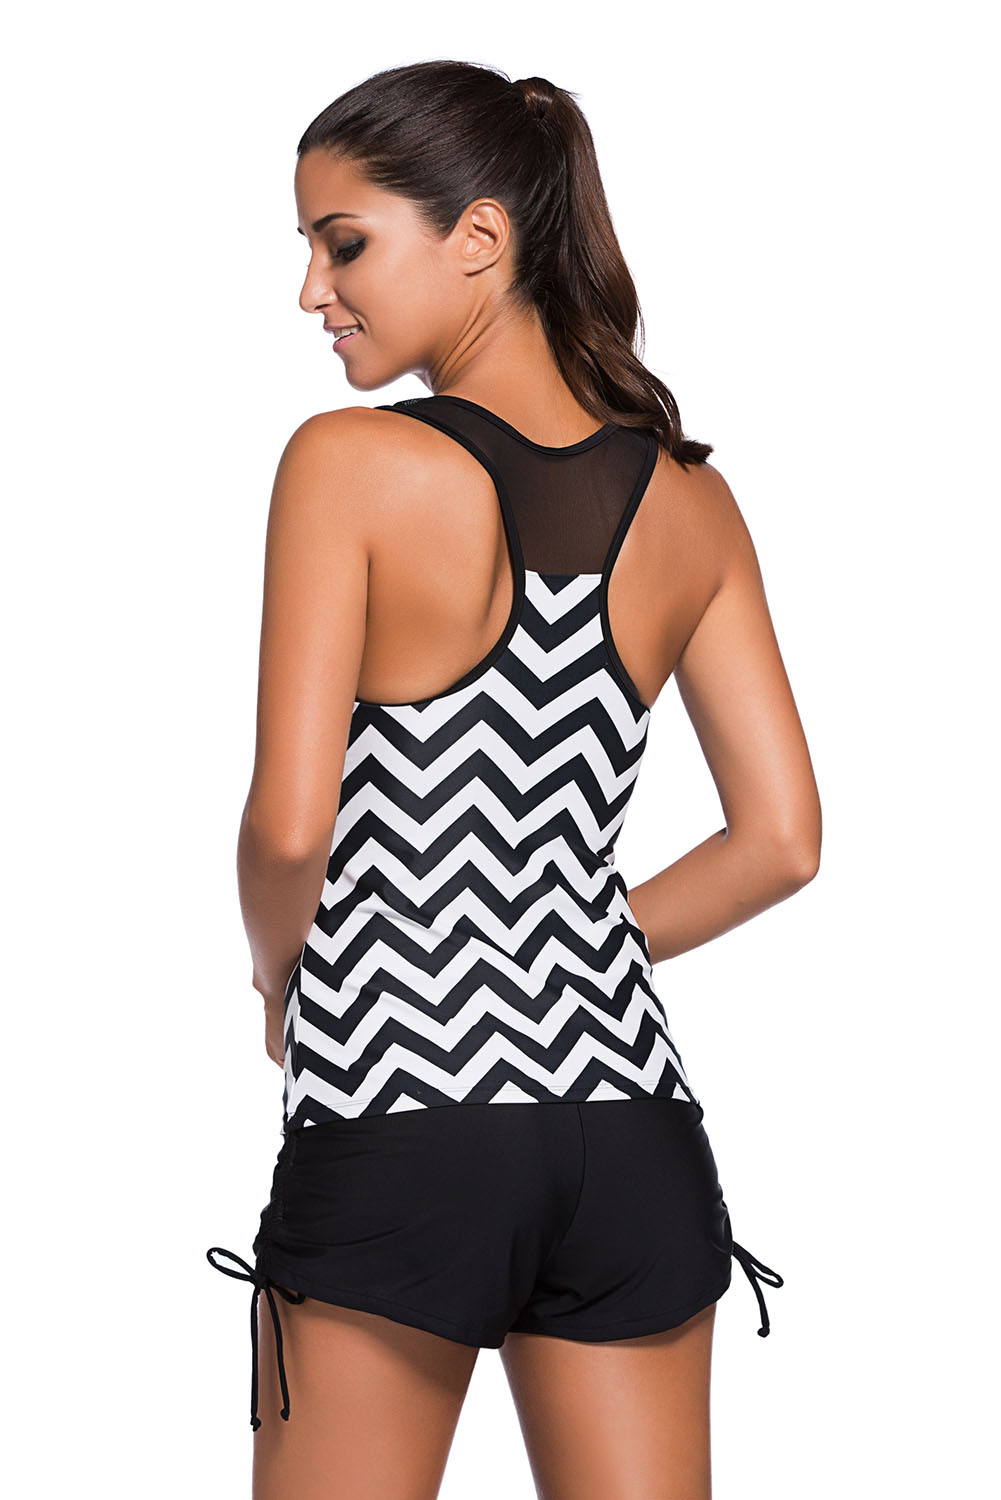 BY410119 Black White Zigzag Print Mesh Splice 2pcs Tankini Swimsuit